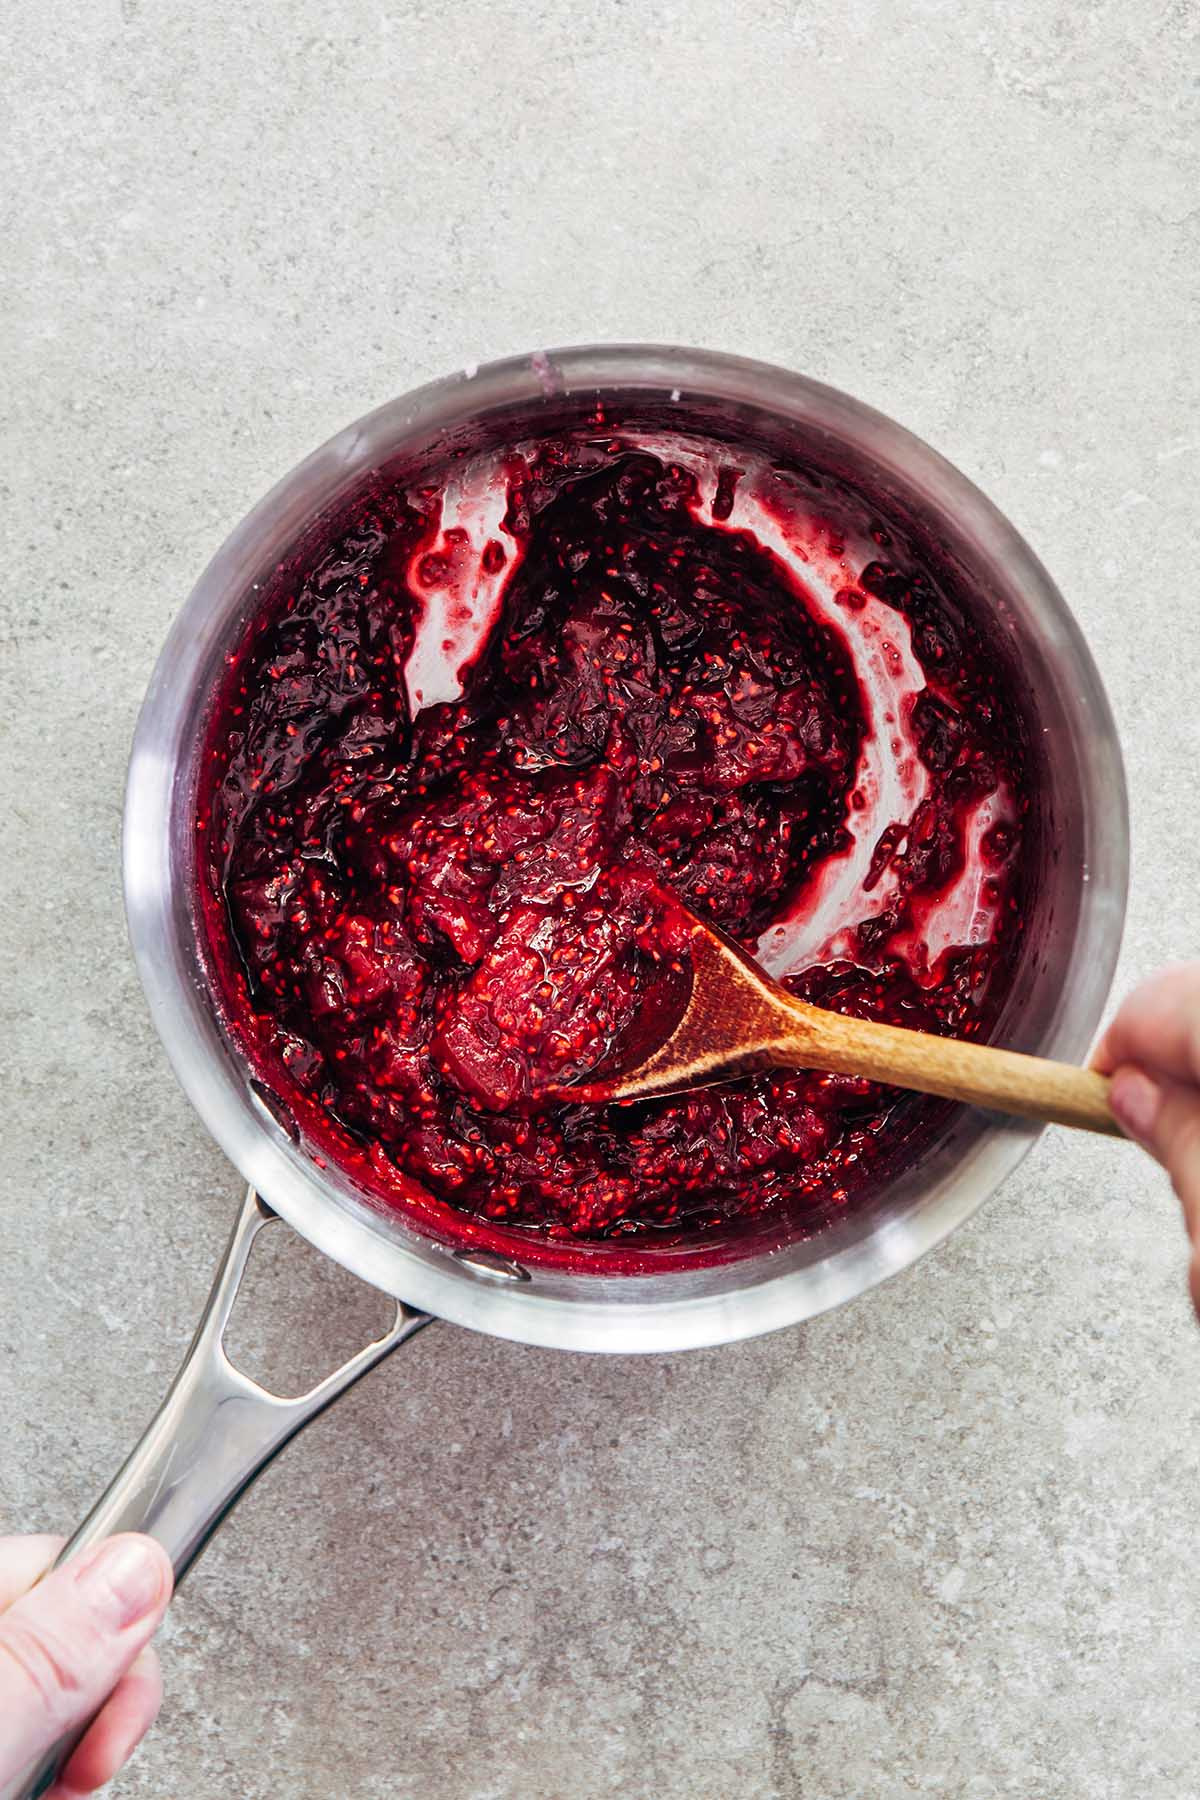 Cooked jam in a pot on a stone surface being stirred with a wooden spoon.